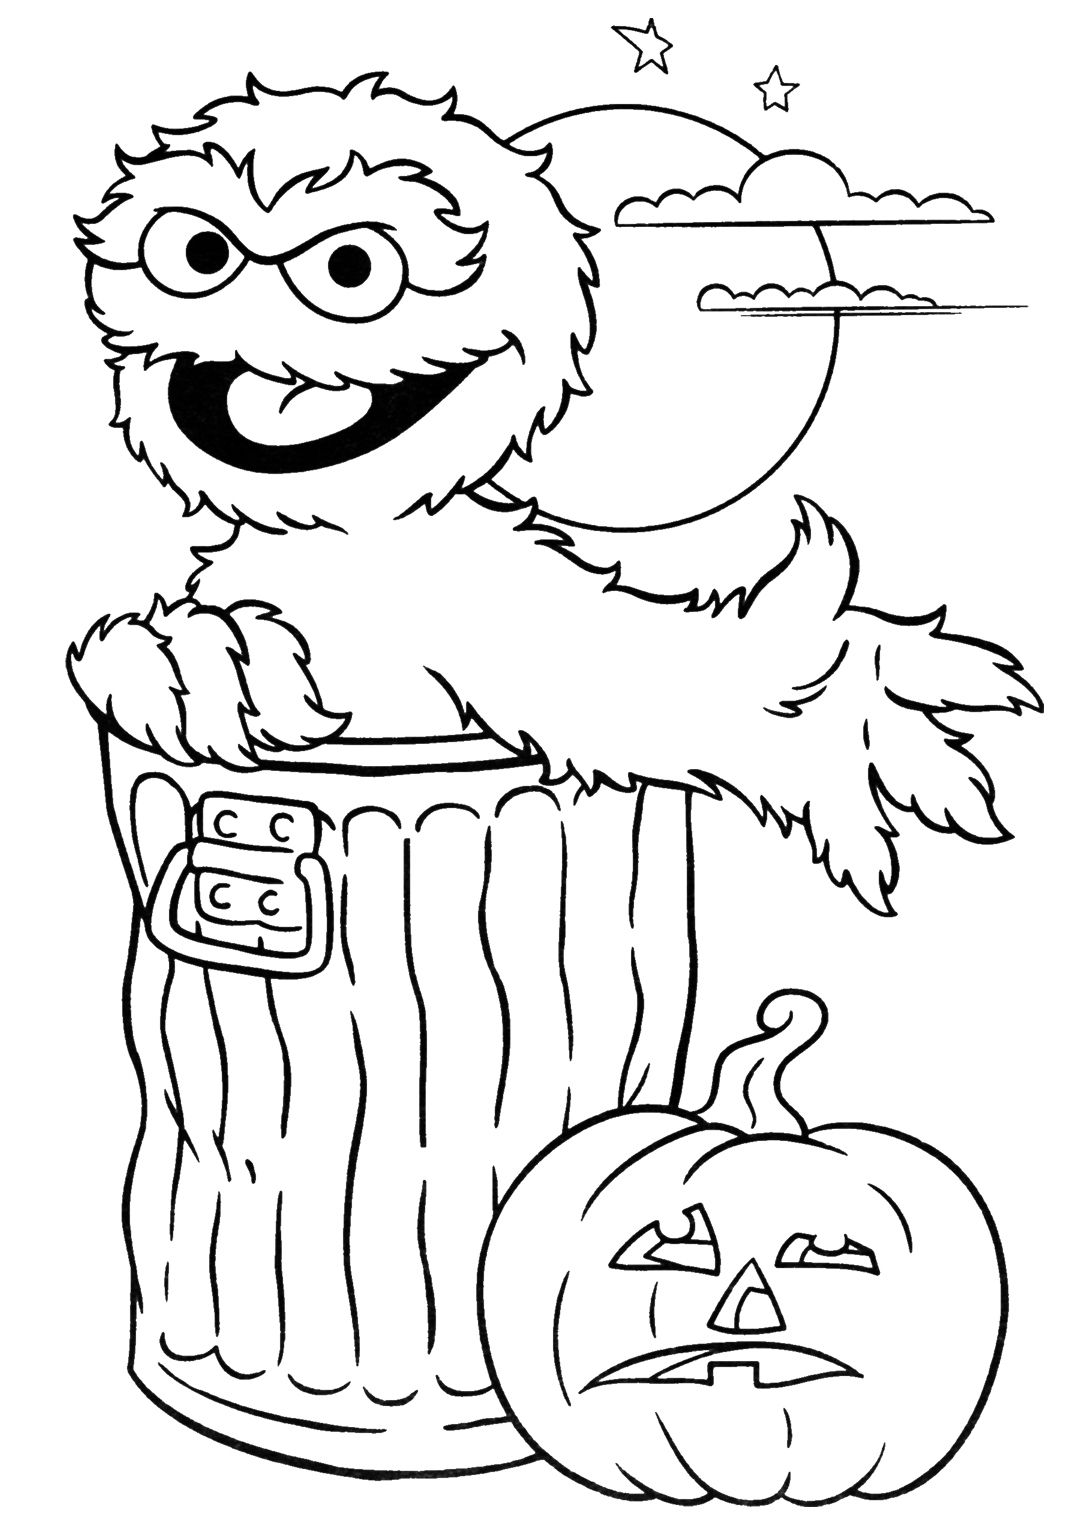 Halloween Colorings Halloween Coloring Sheets Elmo Coloring